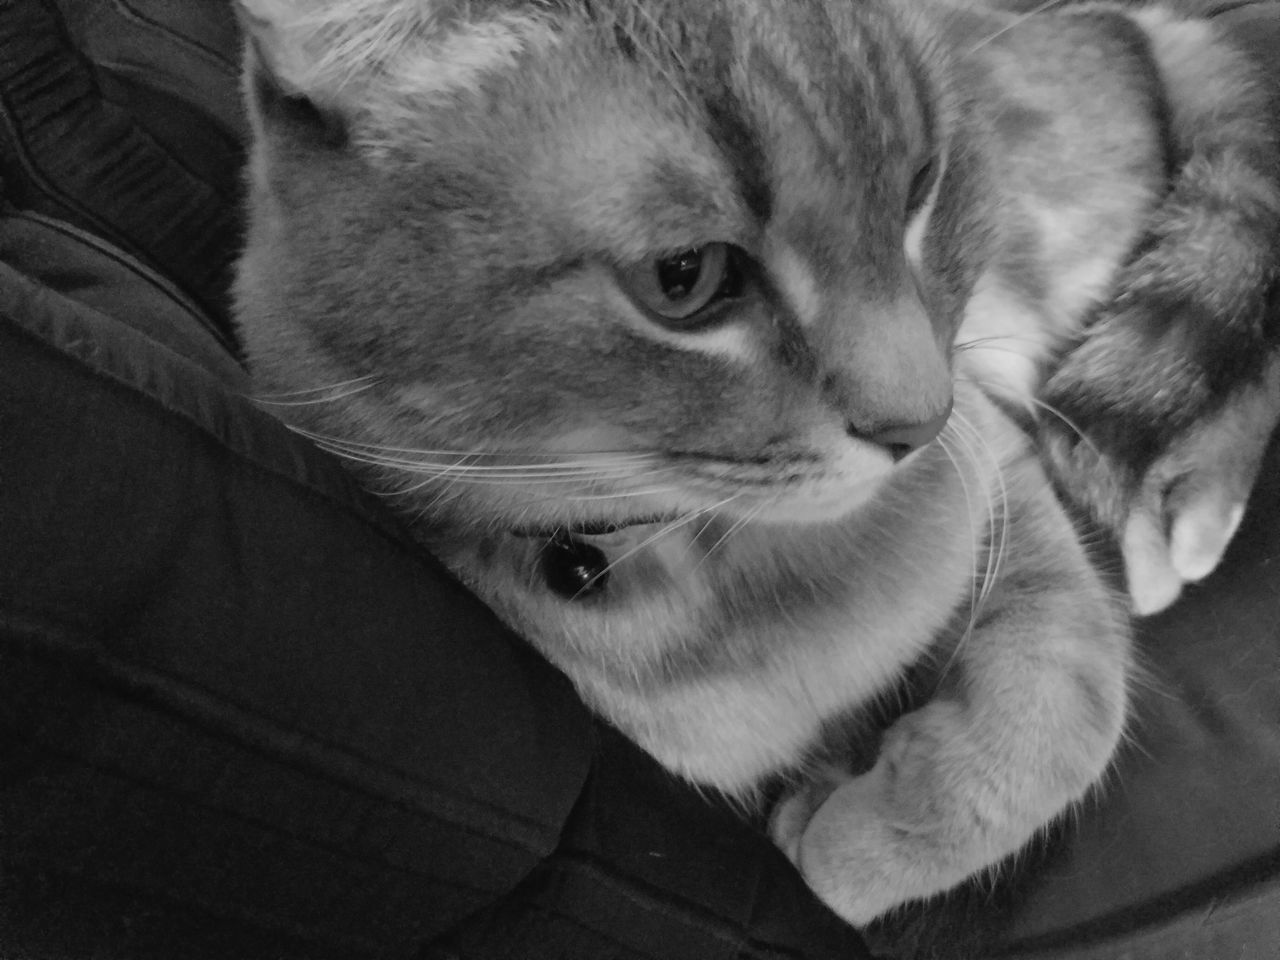 My Topo Monochrome Photography One Animal Pets Animal Themes Domestic Animals Domestic Cat Cat Feline Whisker Close-up Looking Away Mammal Animal Head  Relaxation Zoology Animal Alertness Curiosity Selective Focus At Home Whiskers MUR B&W